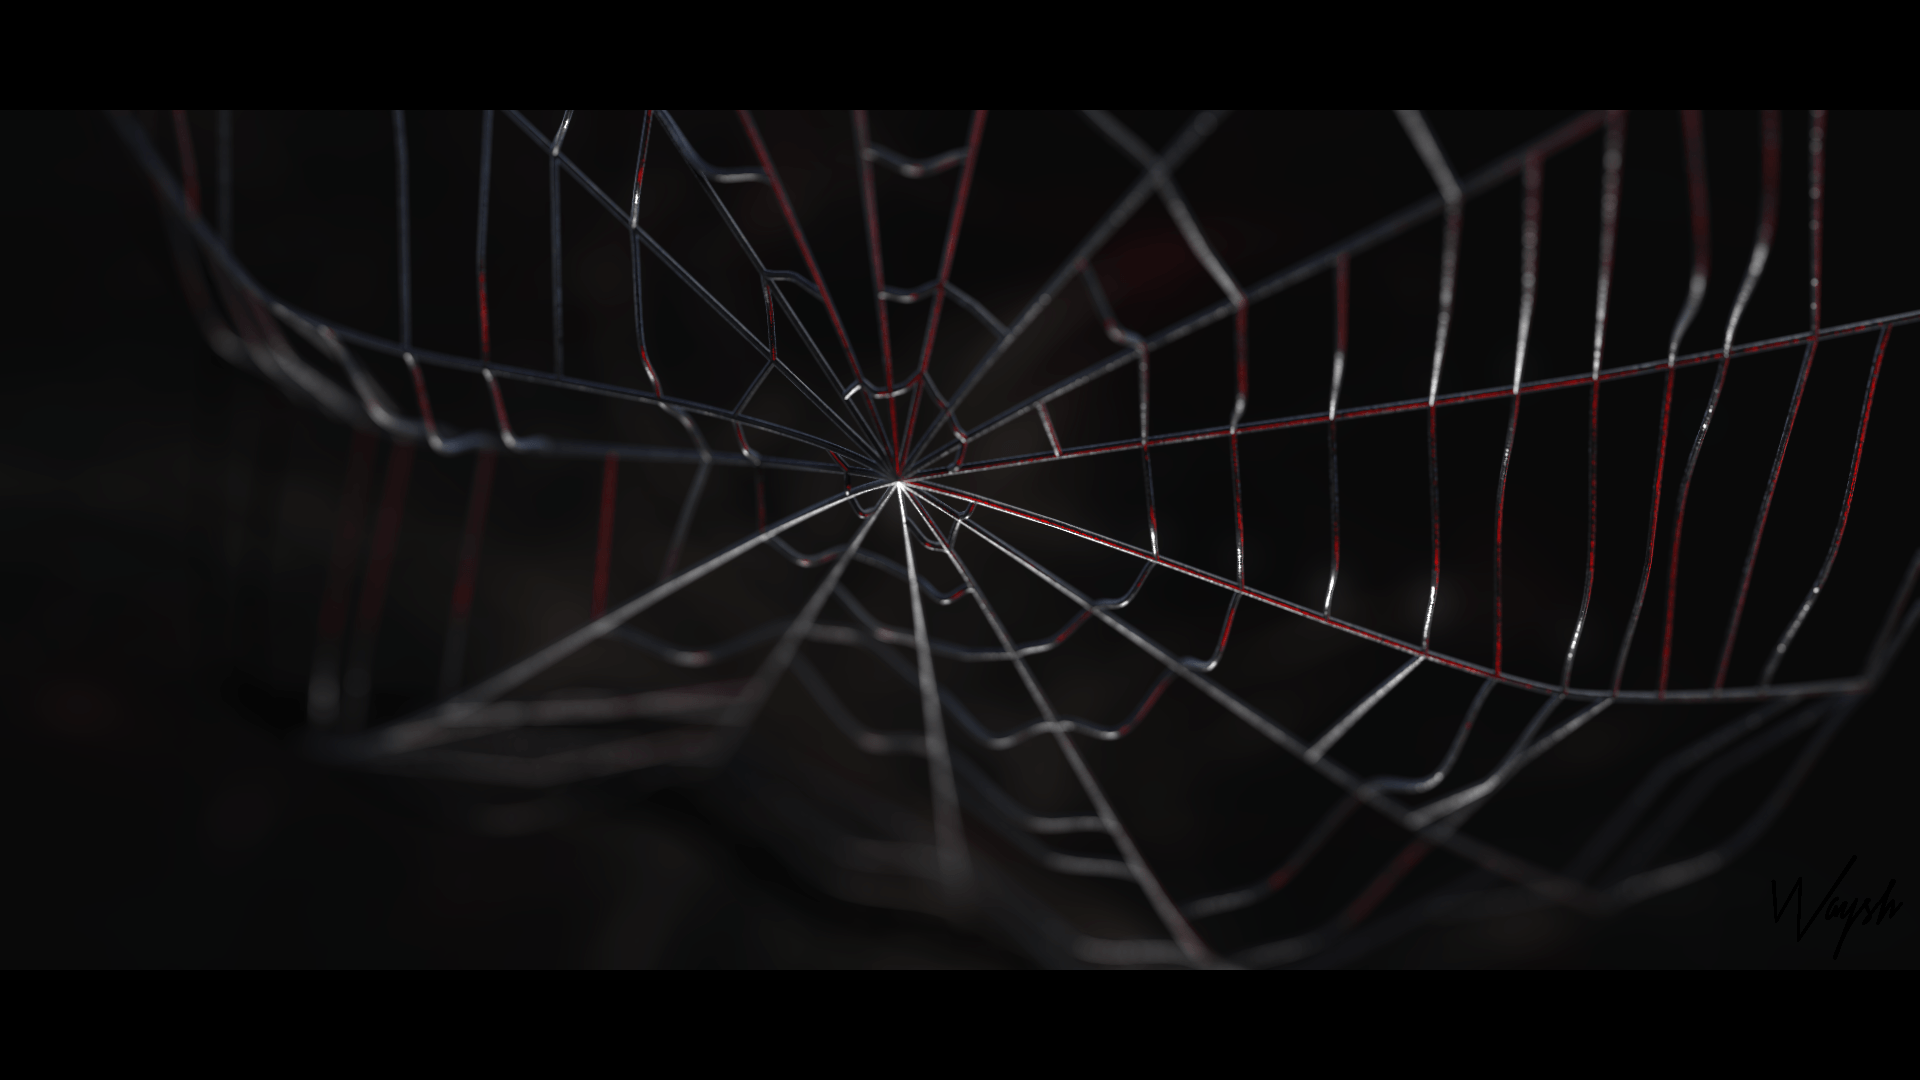 Spider Man Web Wallpapers Top Free Spider Man Web Backgrounds